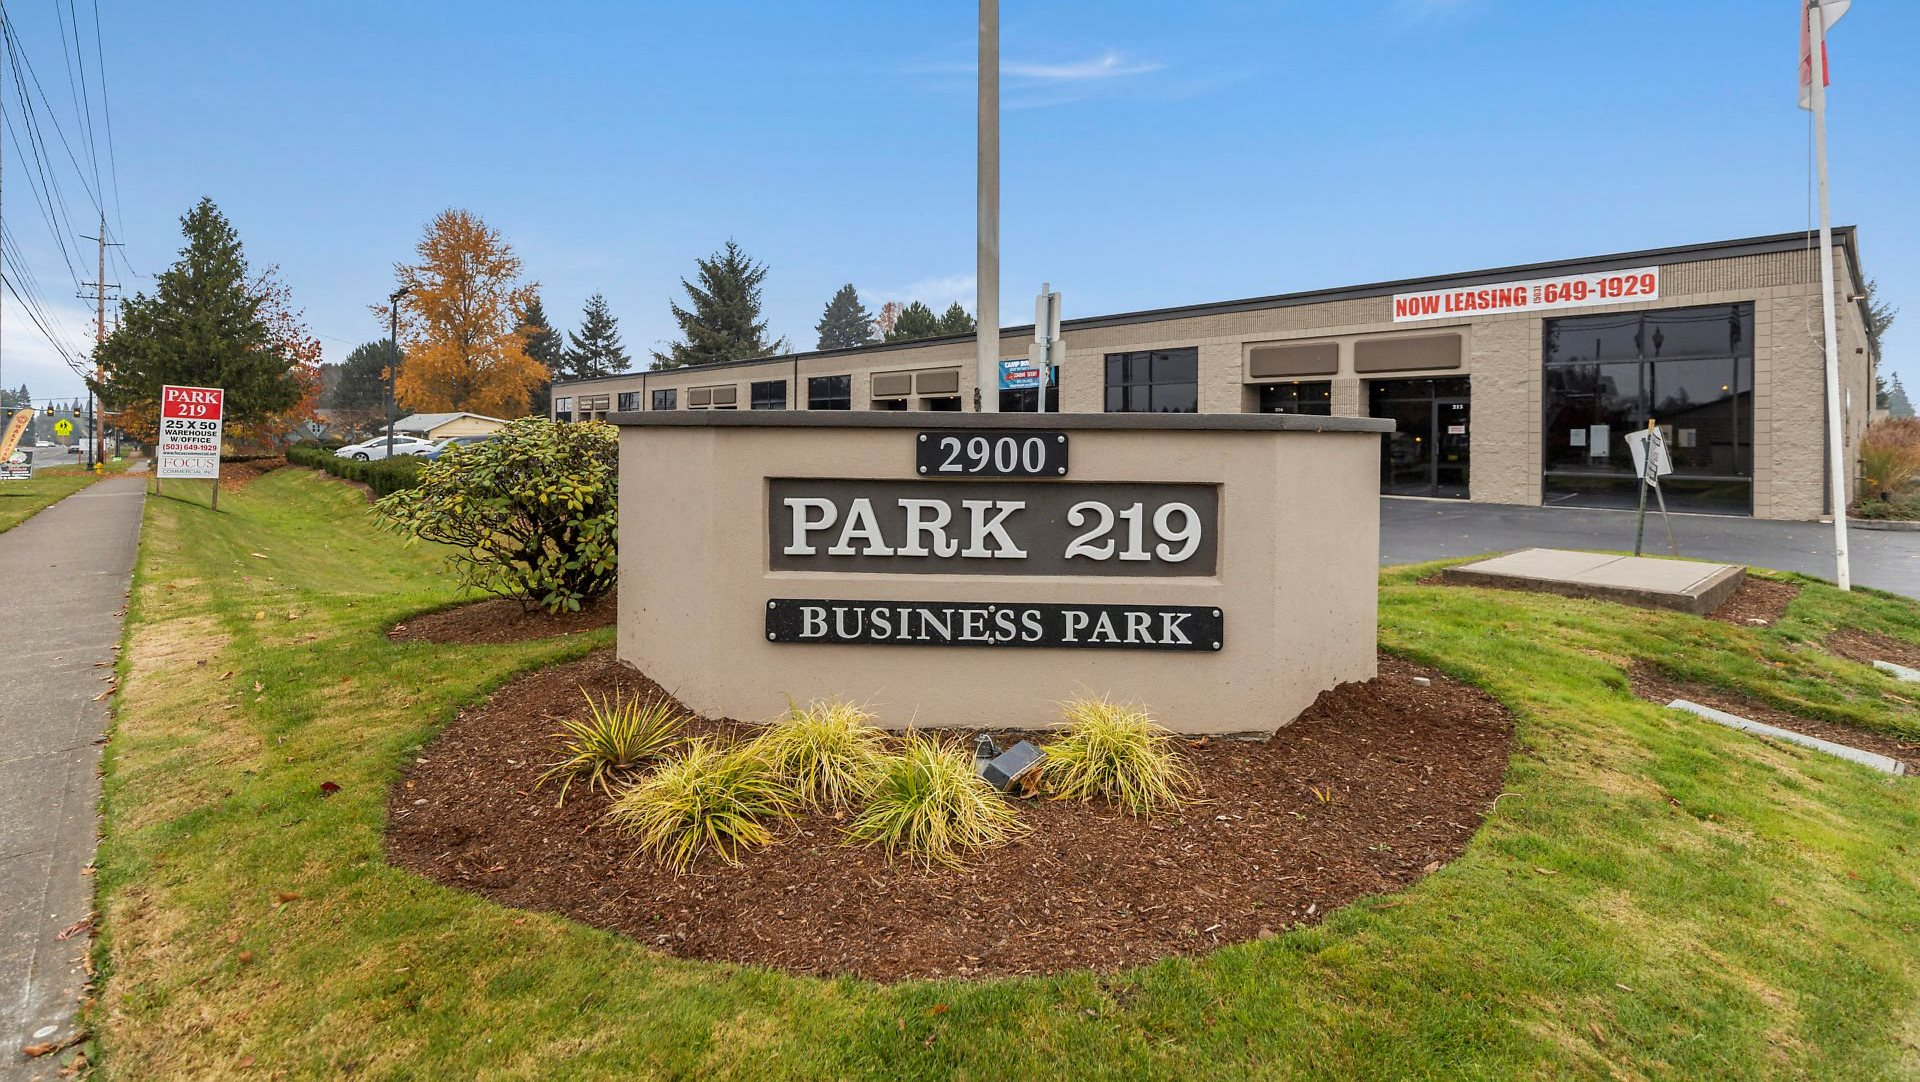 Park 219 Business Park Monument Sign and Landscaping